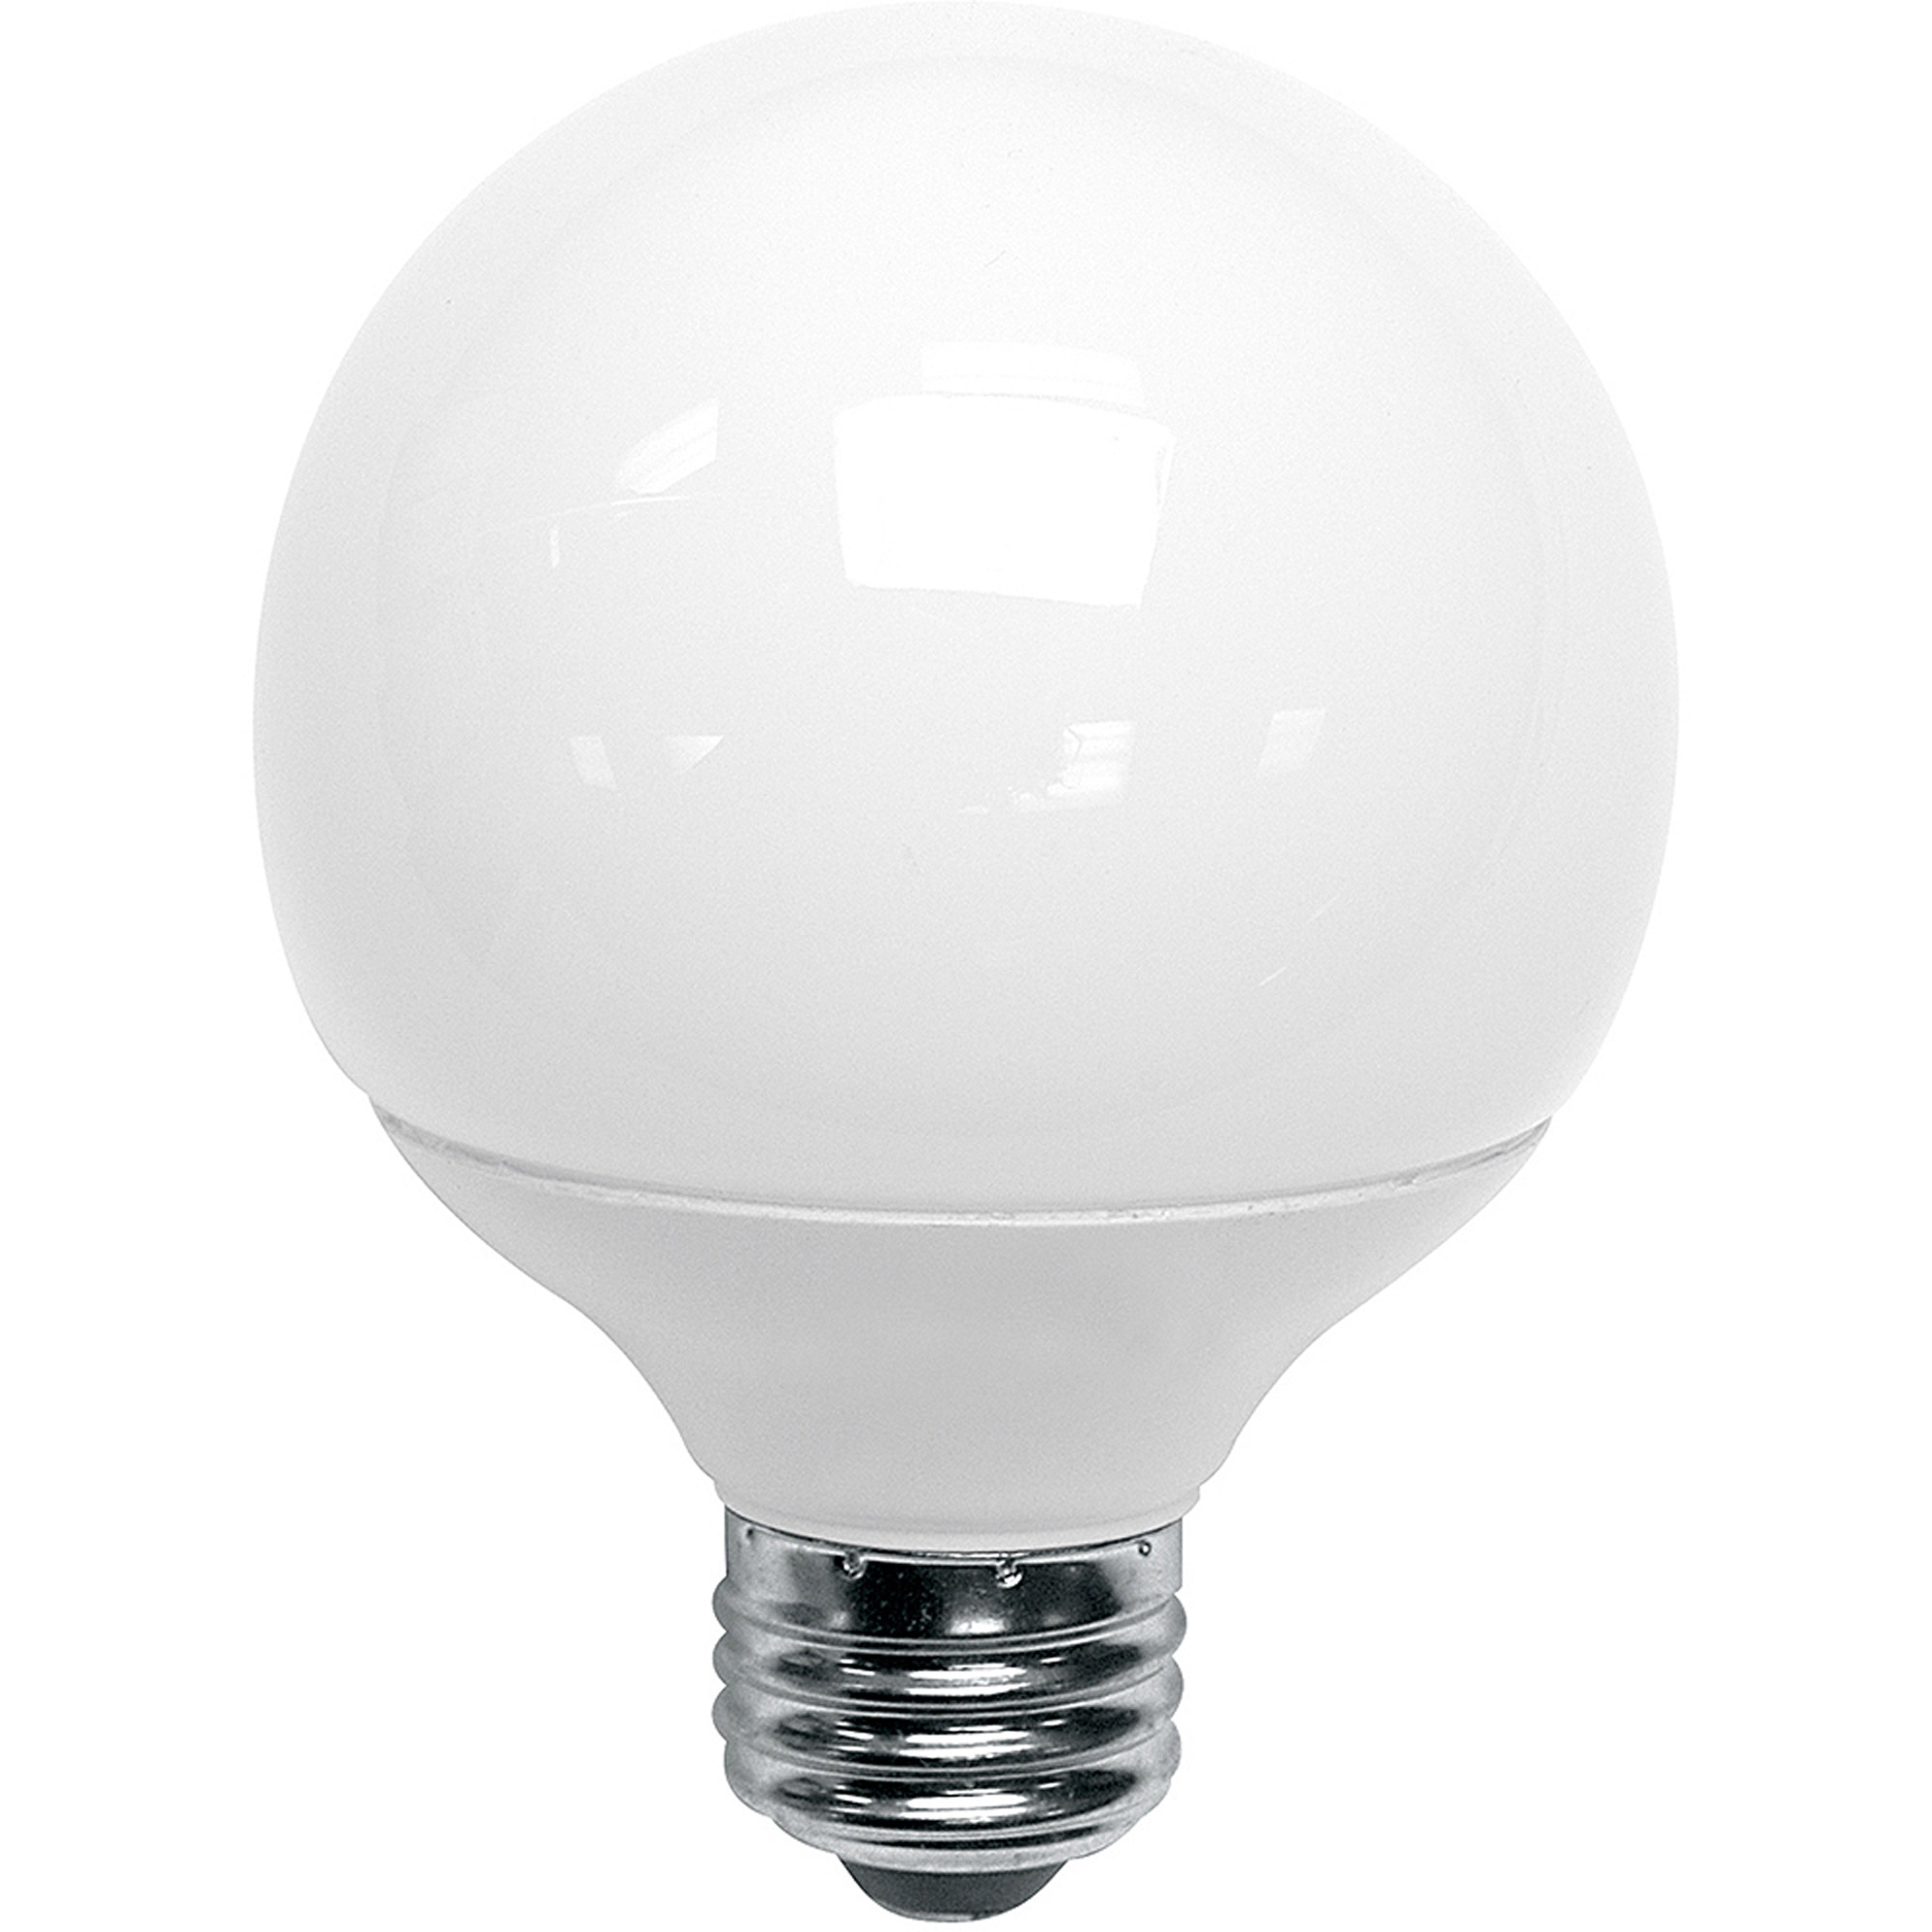 Great Value LED Light Bulb 8W (60W Equivalent) G25 (E26) Dimmable, Daylight  - Walmart.com